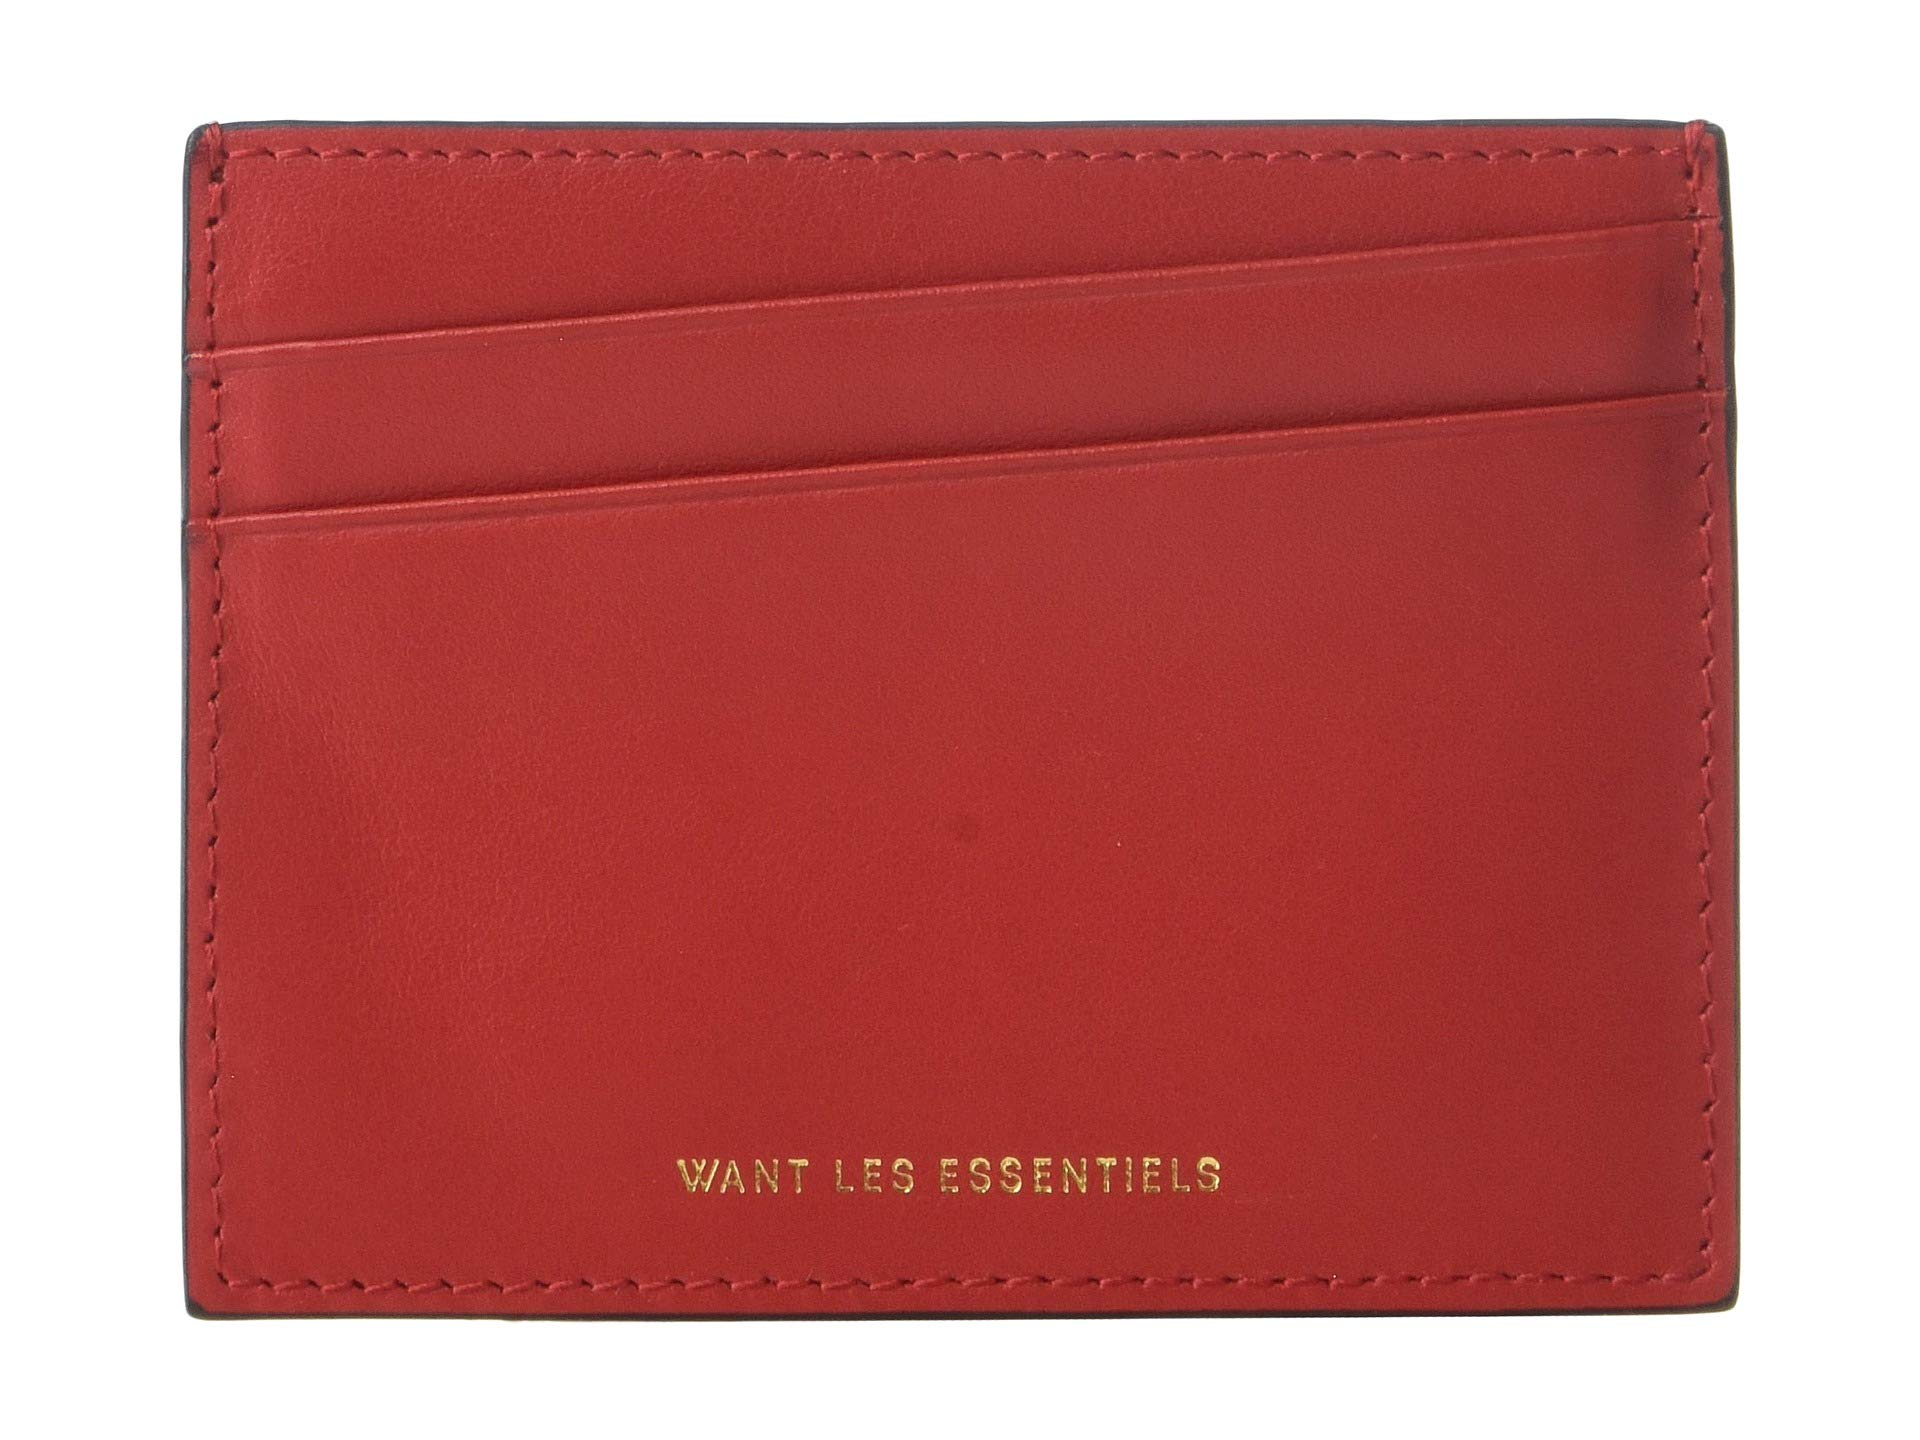 Holder Essentiels Les Red Want Branson Card True xCFHIOq